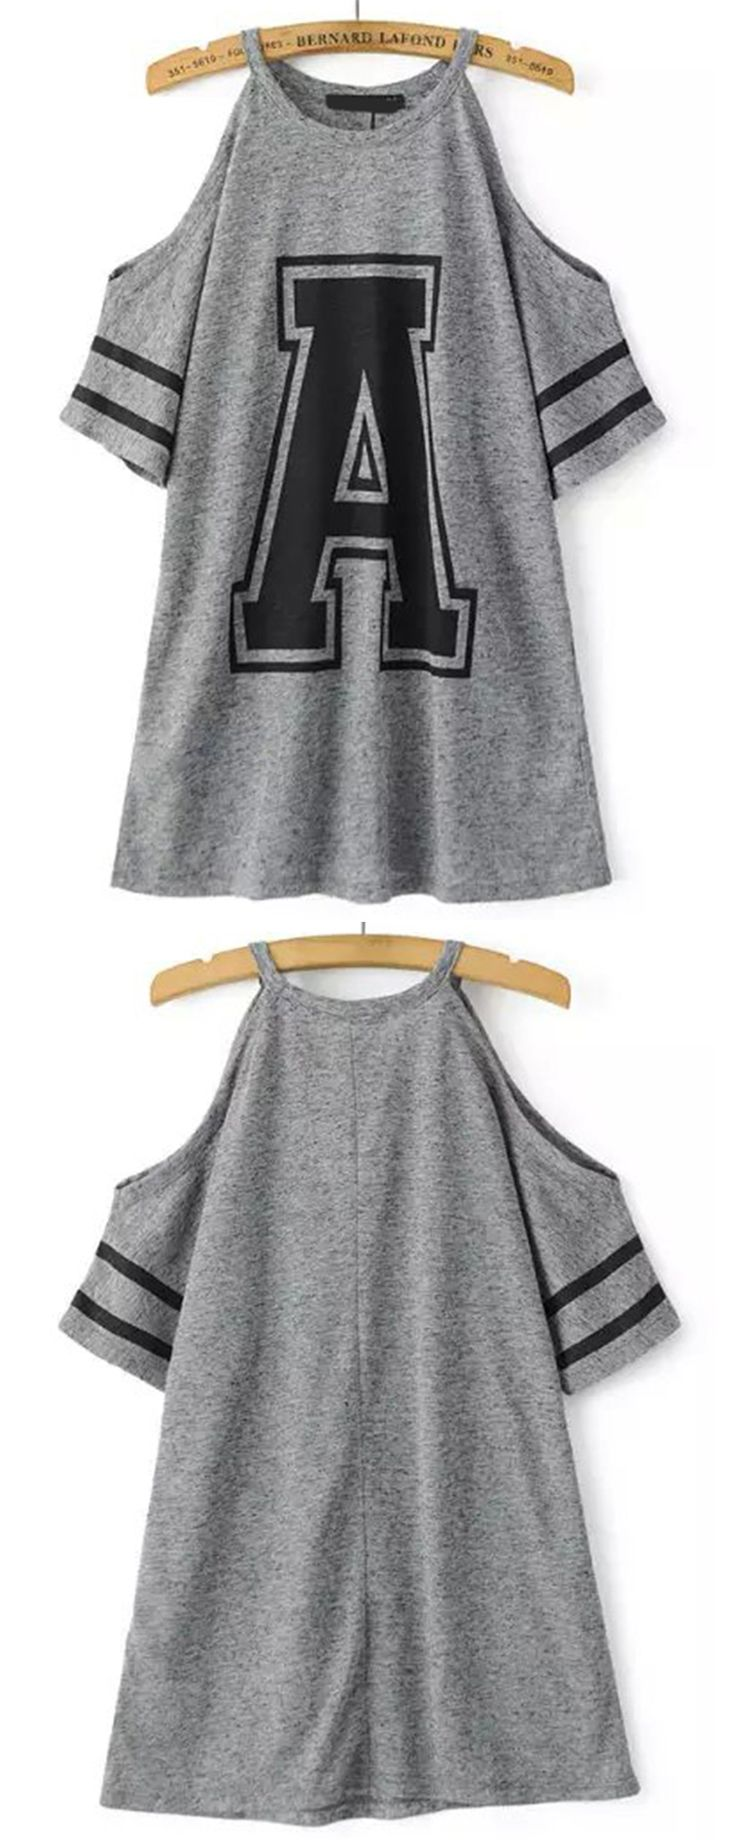 Grey Cold Shoulder A Print Loose T-Shirt